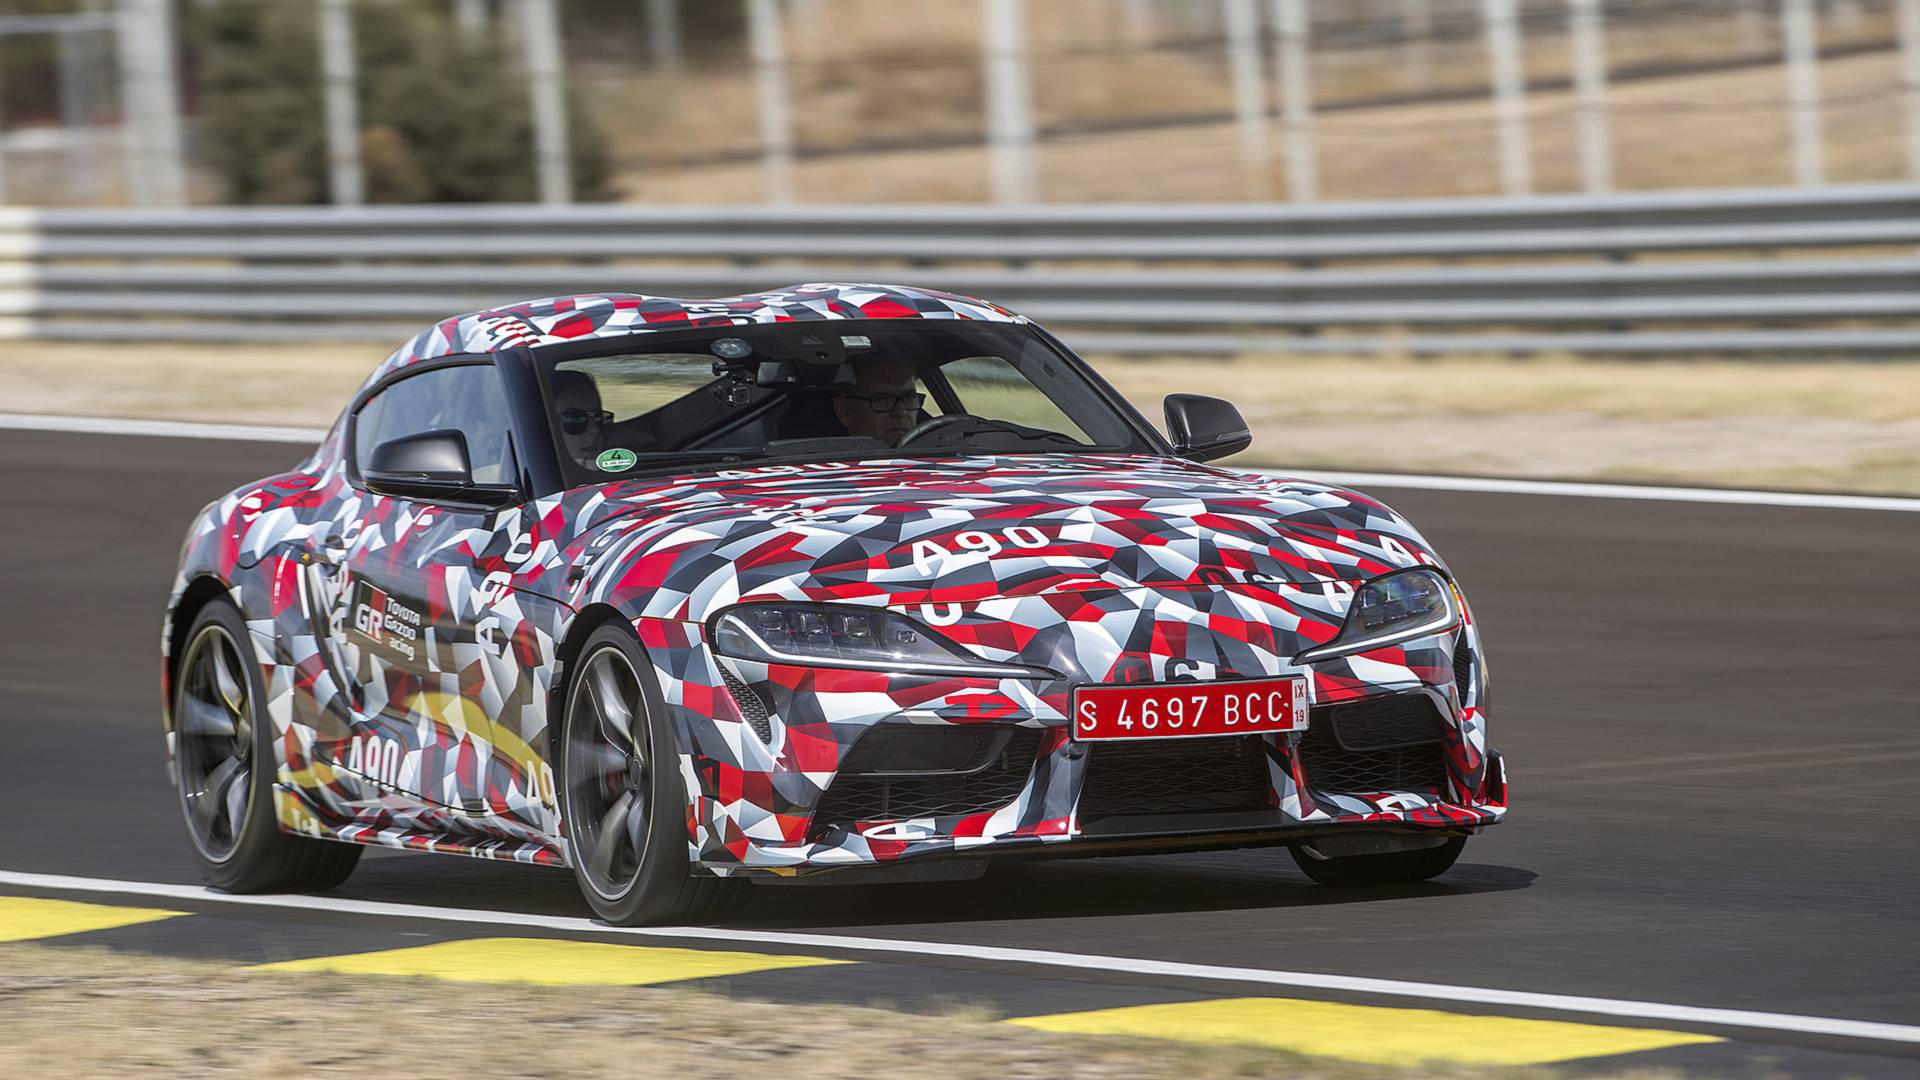 Buy Toyota Supra Camo Wrapping Paper For A Good Cause 9c8bd0e3a0